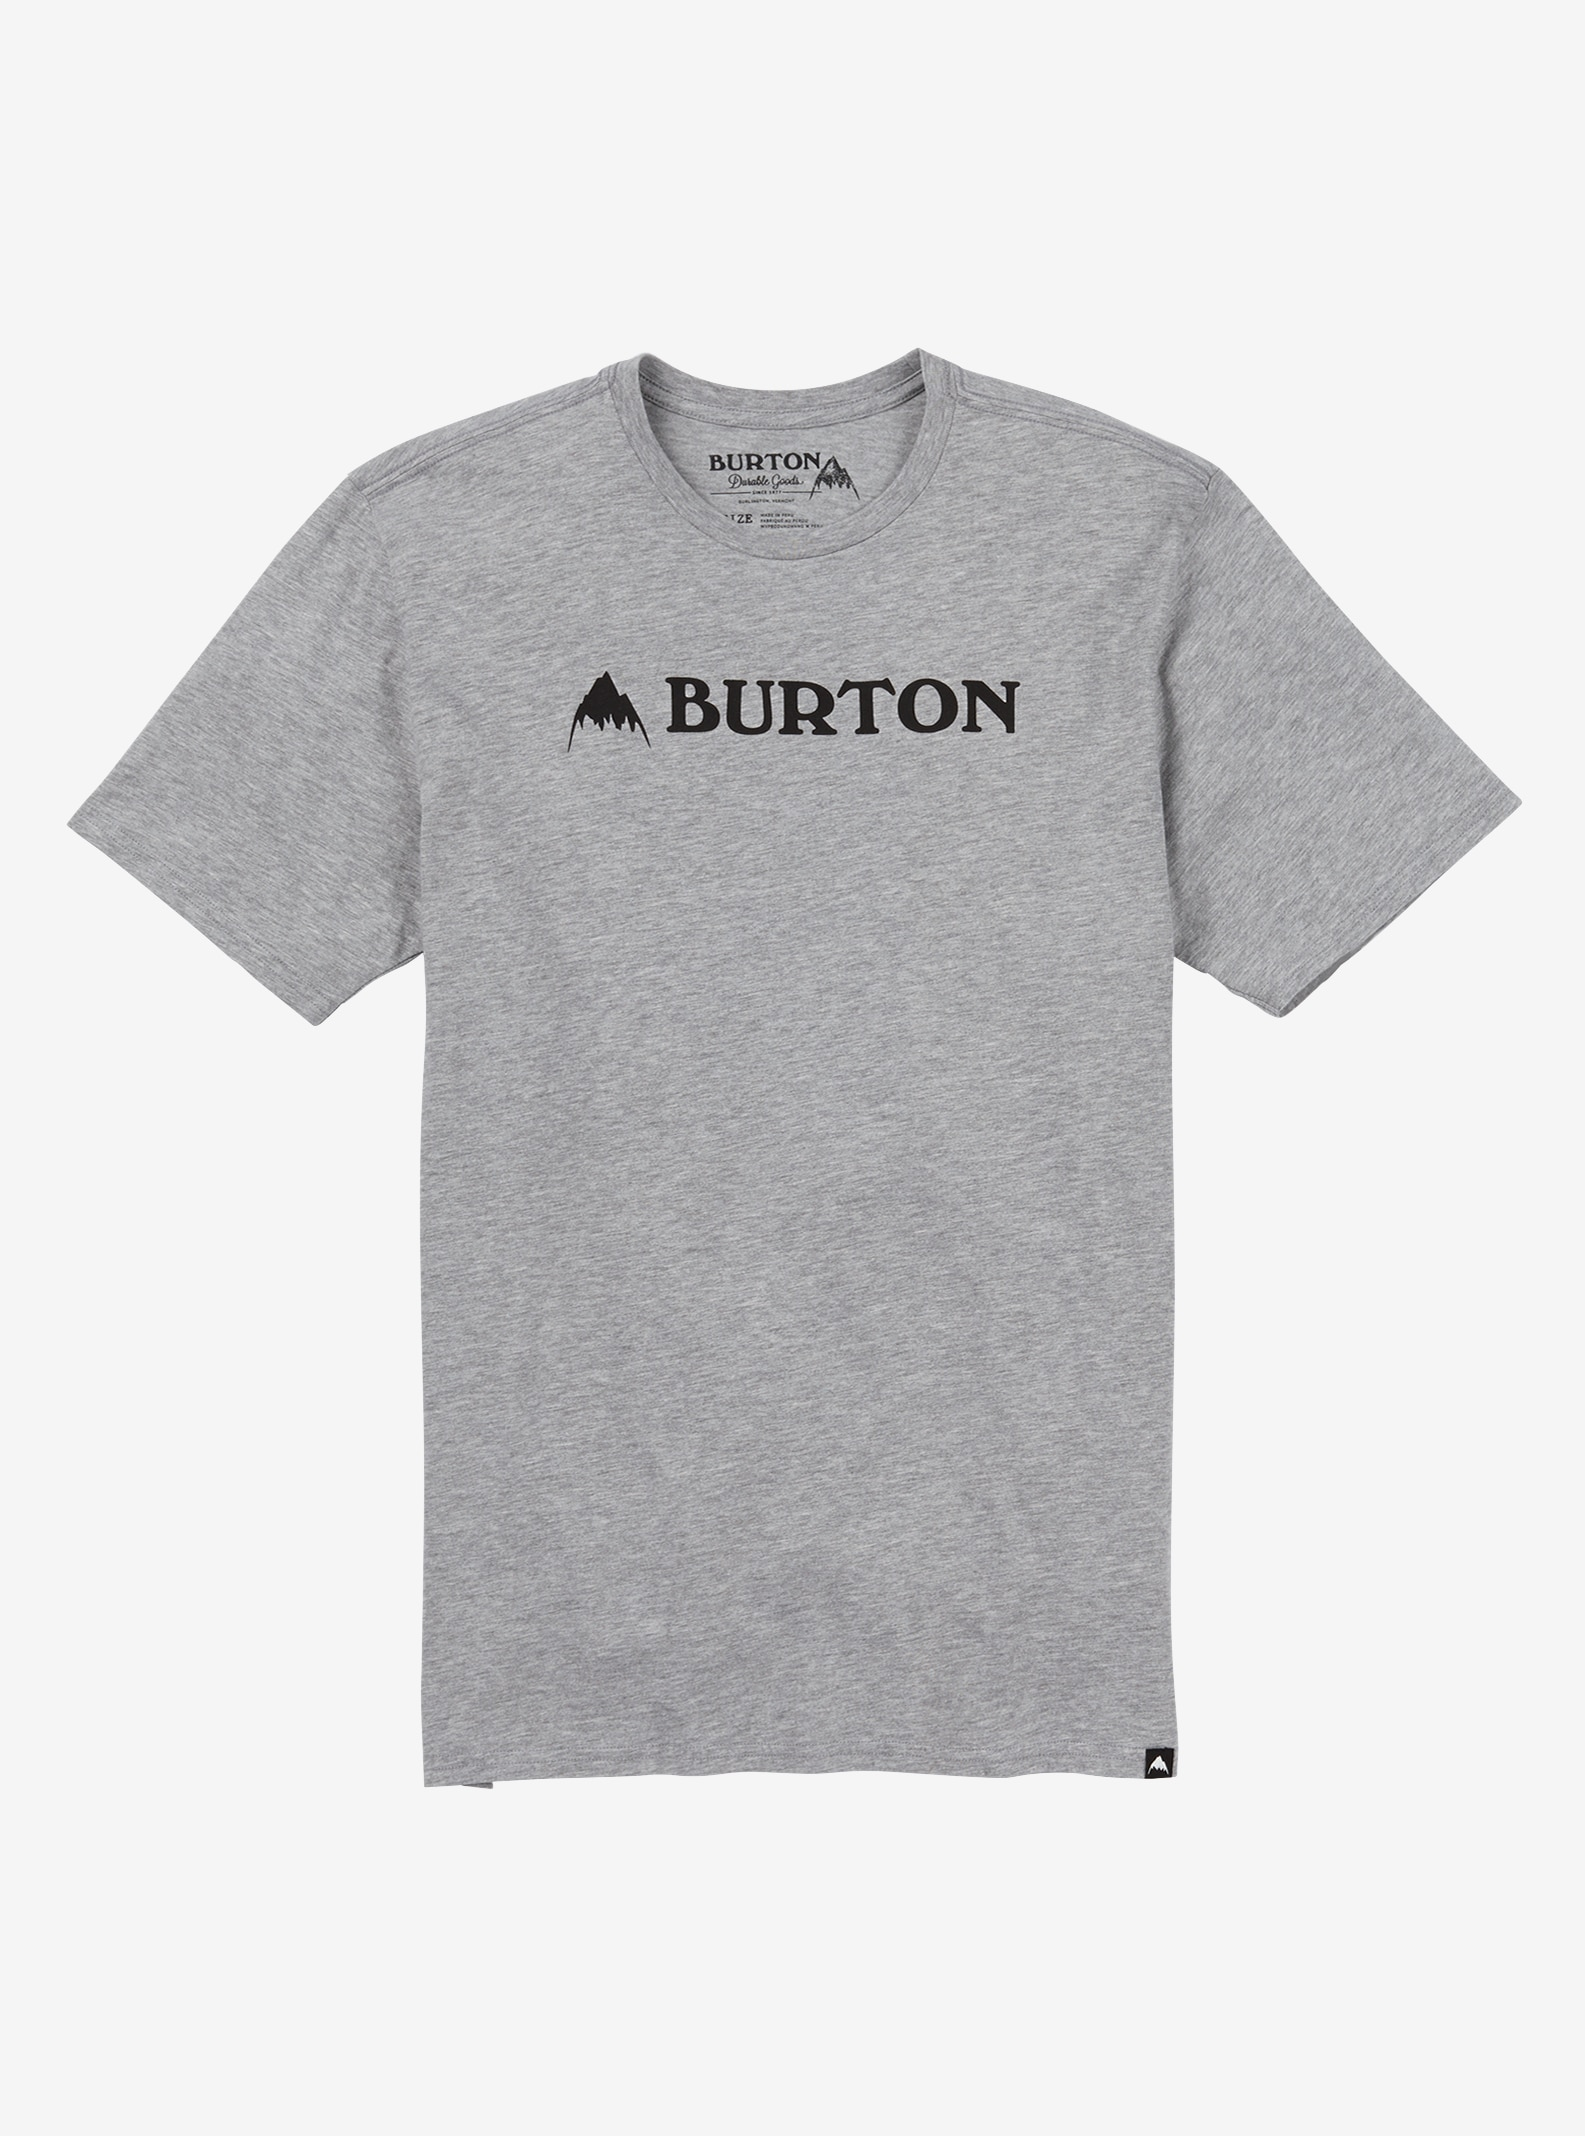 Men's Burton Mountain Horizontal Short Sleeve T Shirt shown in Gray Heather